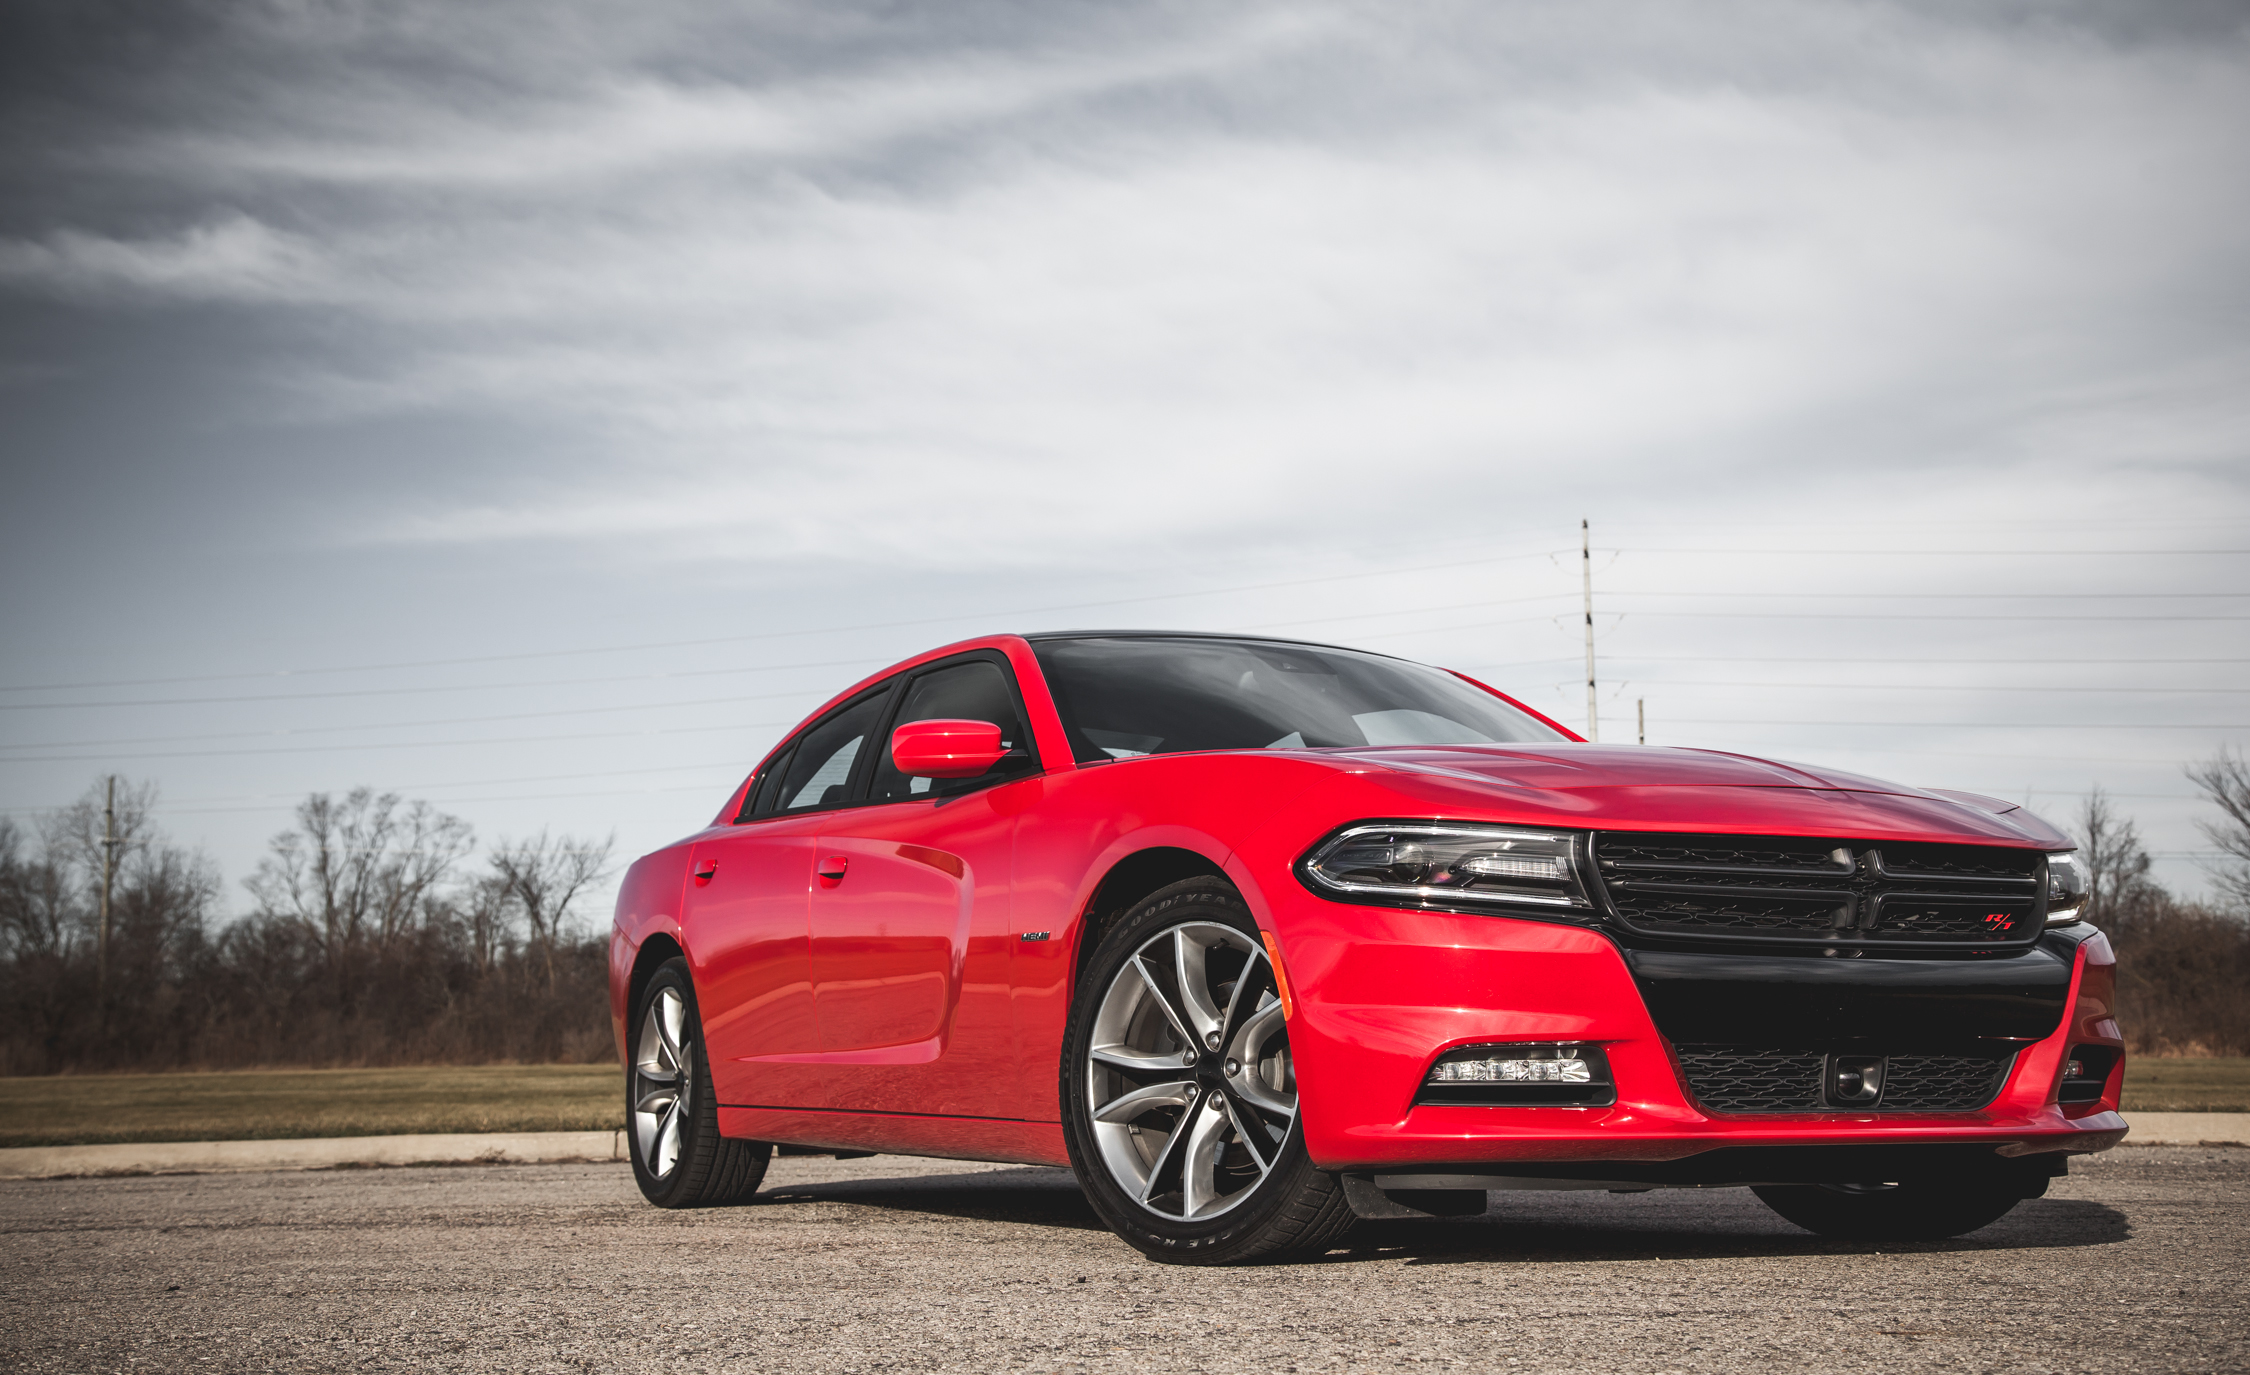 2015 Dodge Charger R T Exterior 7887 Cars Performance